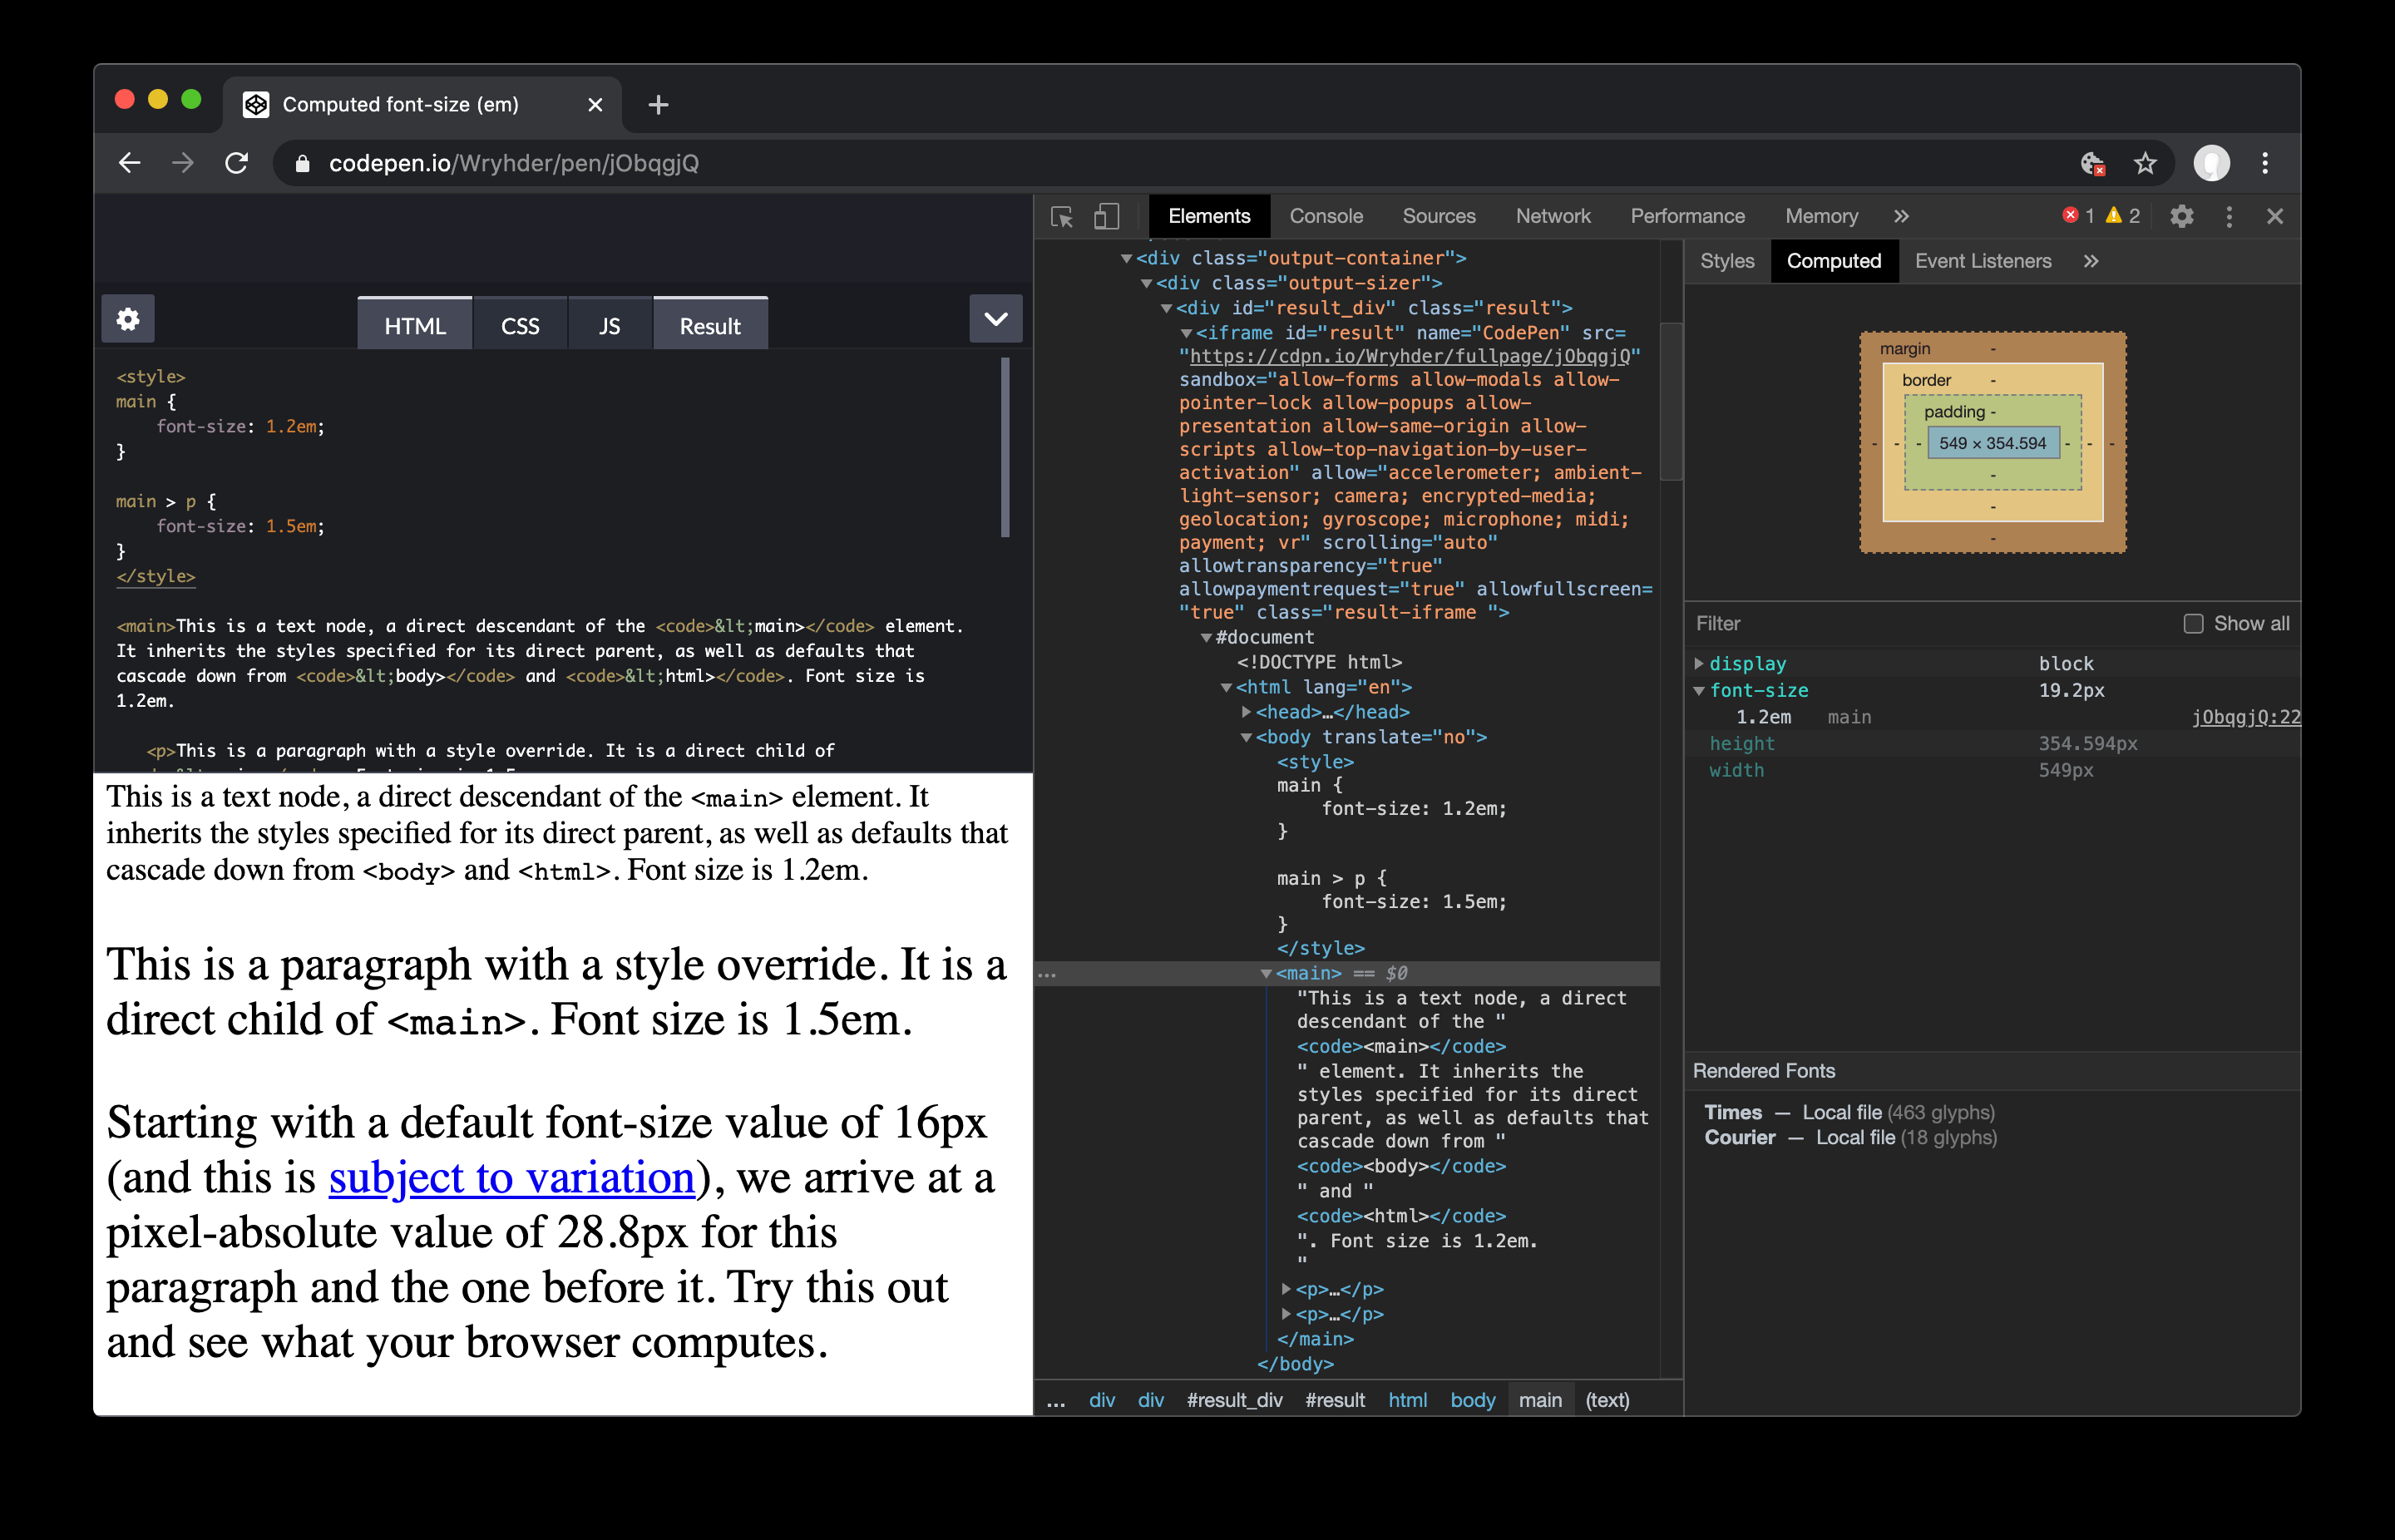 Screenshot of Chrome DevTools open to the Element view with Computed Properties open.